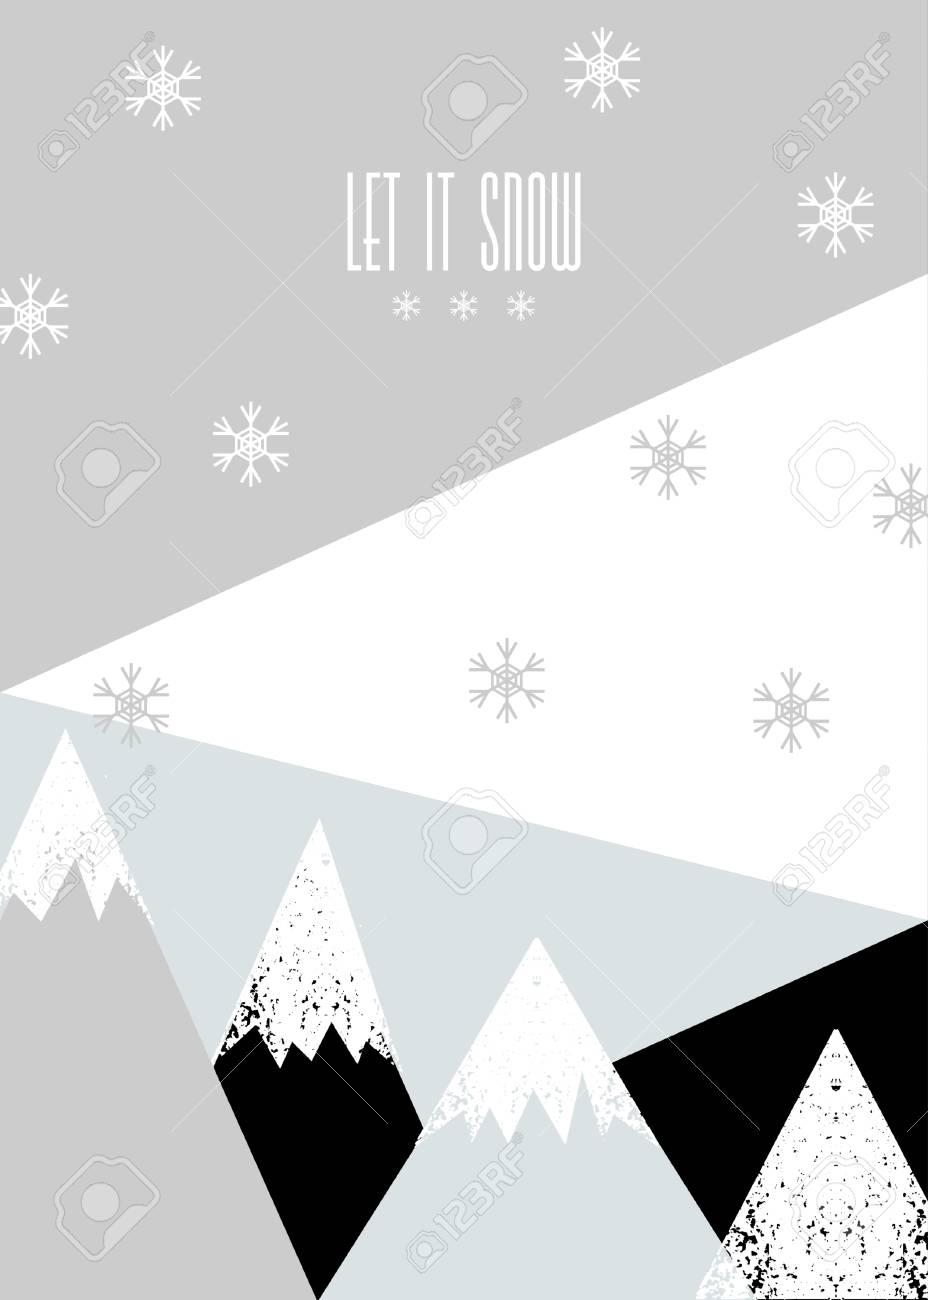 modern christmas greeting card template with text let it snow